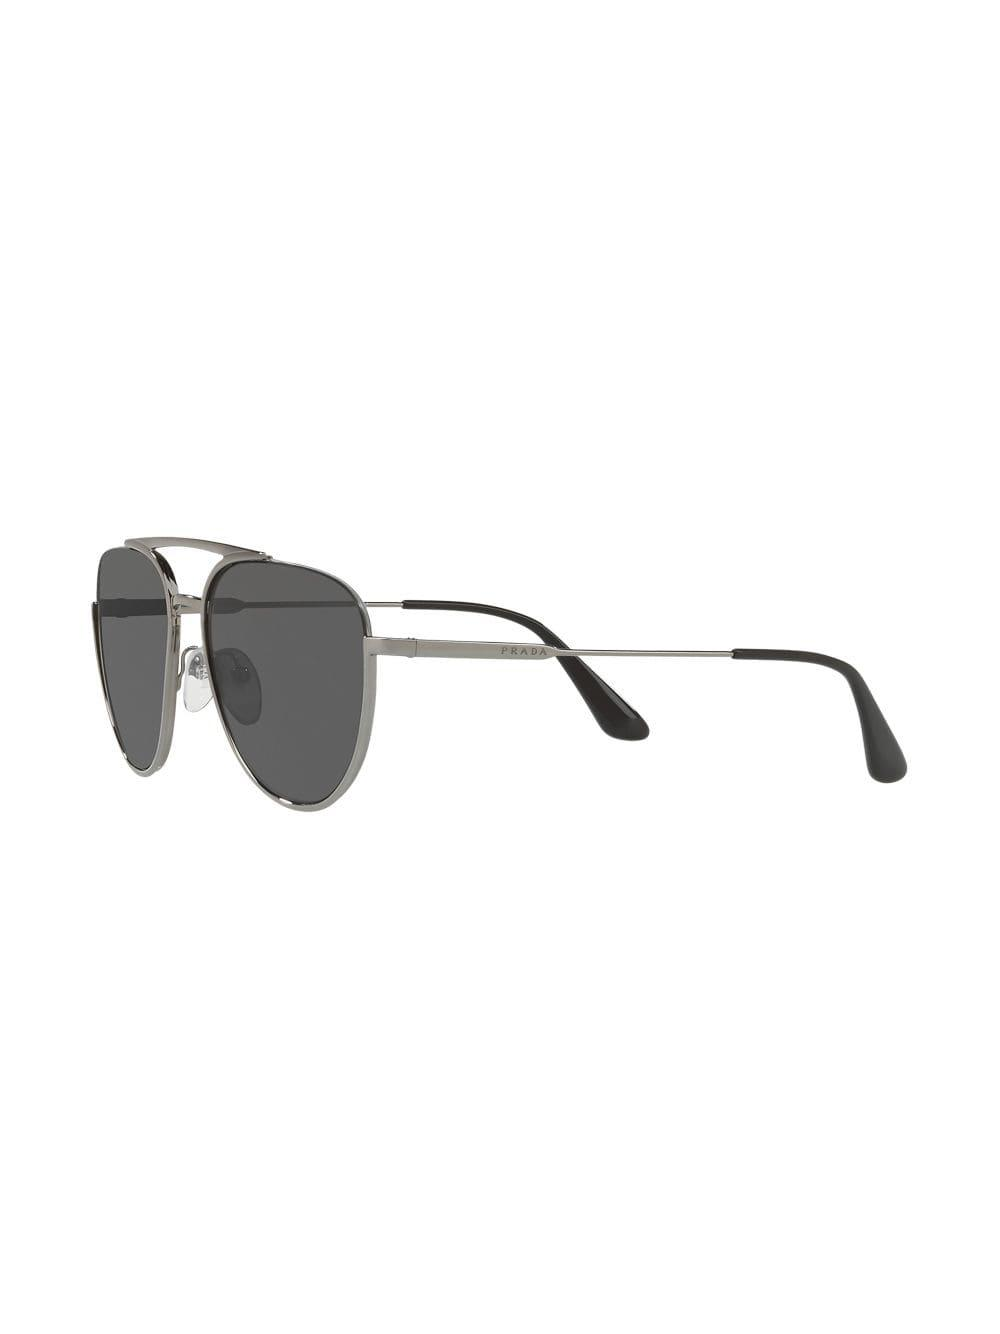 473187bf875 Prada Aviator Shaped Sunglasses in Gray for Men - Save 0.7692307692307736%  - Lyst